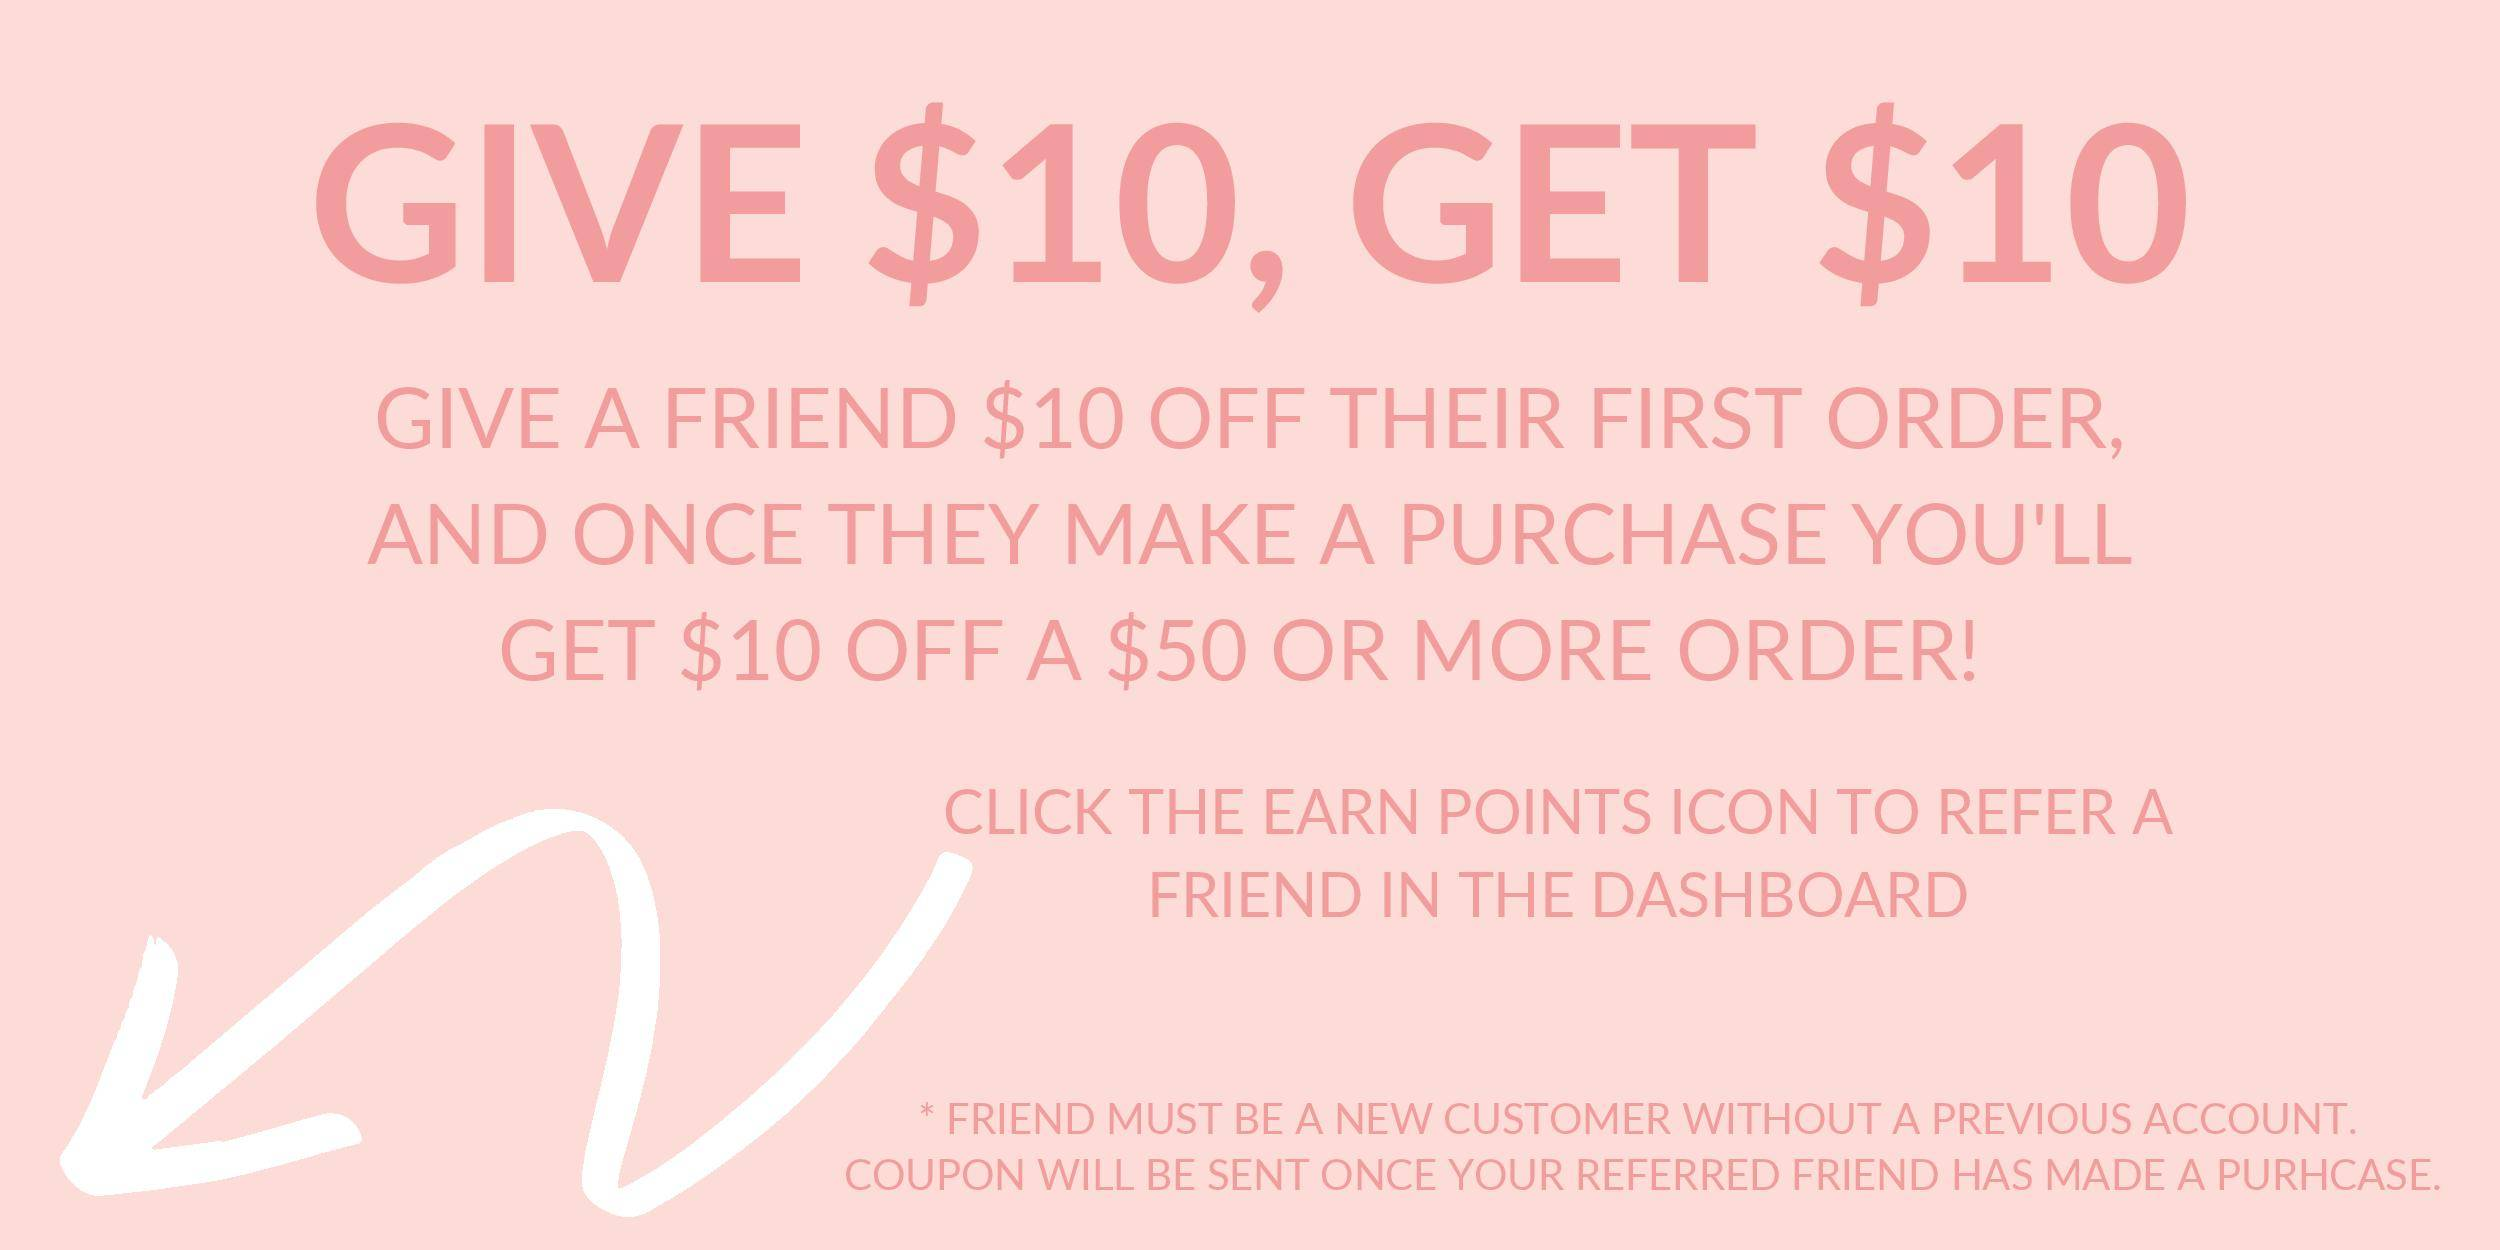 Spotlight Boutique Give $10 Get $10 with rewards